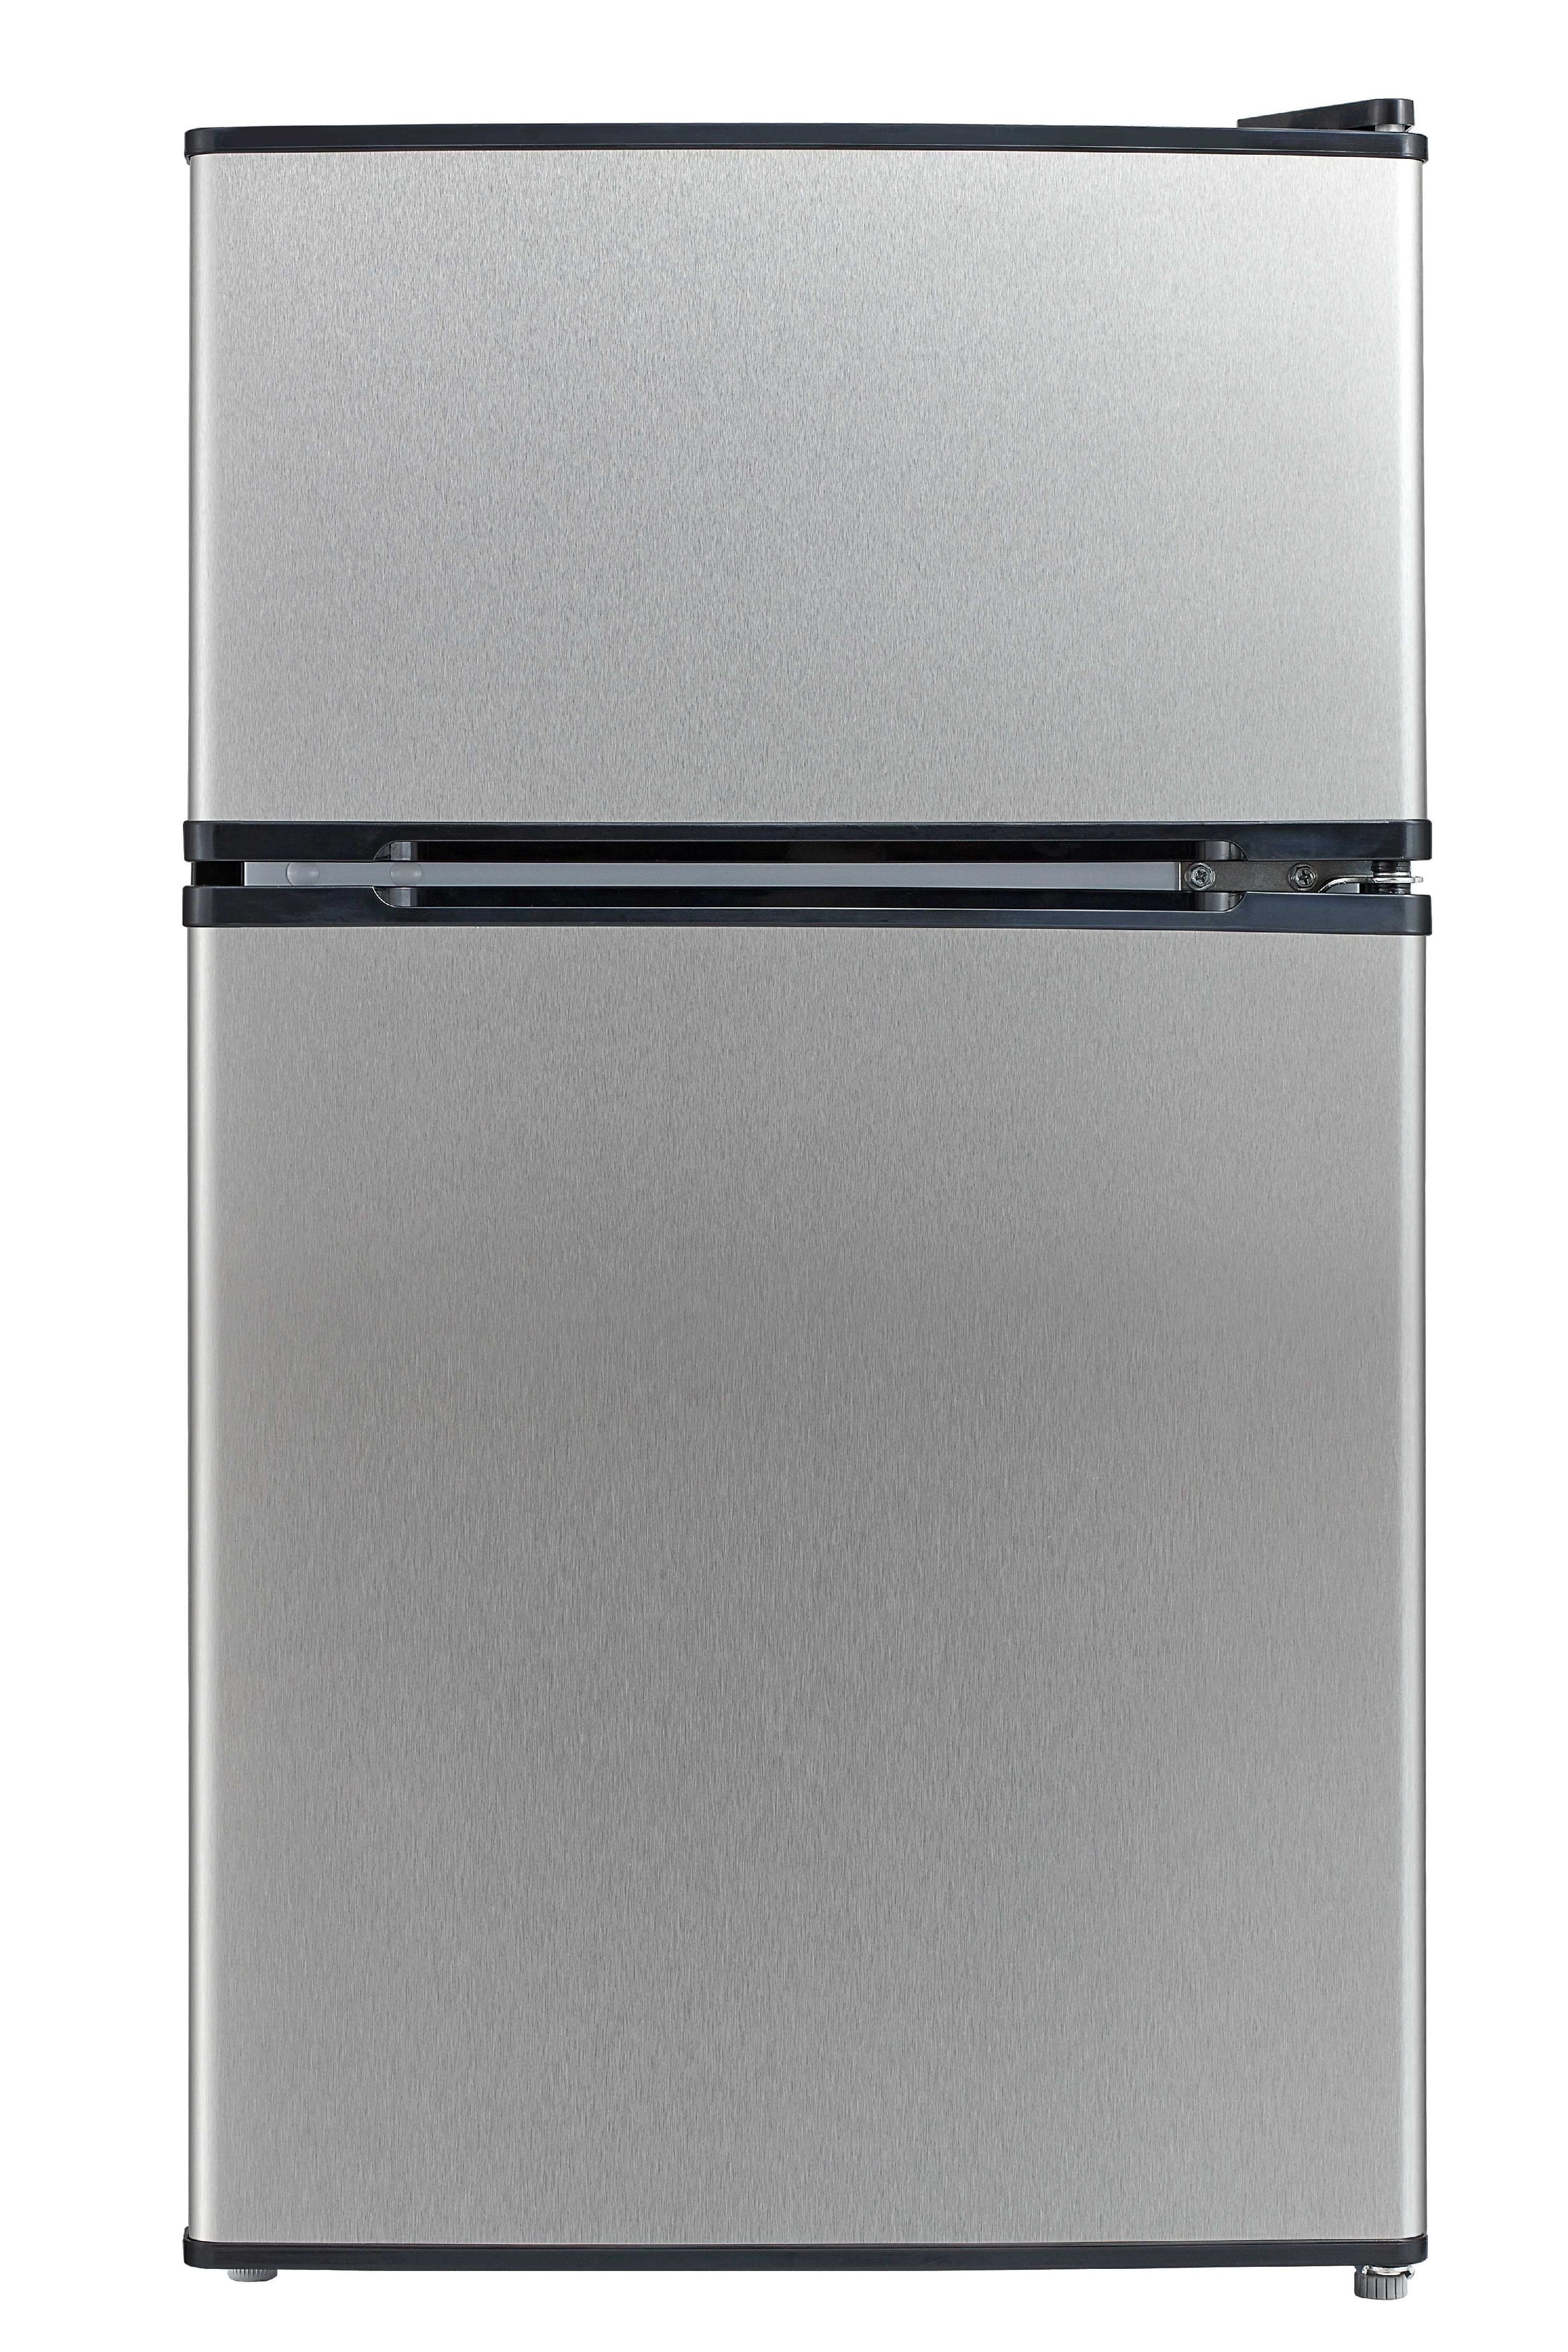 Emerson 3.1 Cu Ft Two Door Mini Fridge with Freezer CR510BSSE, Stainless